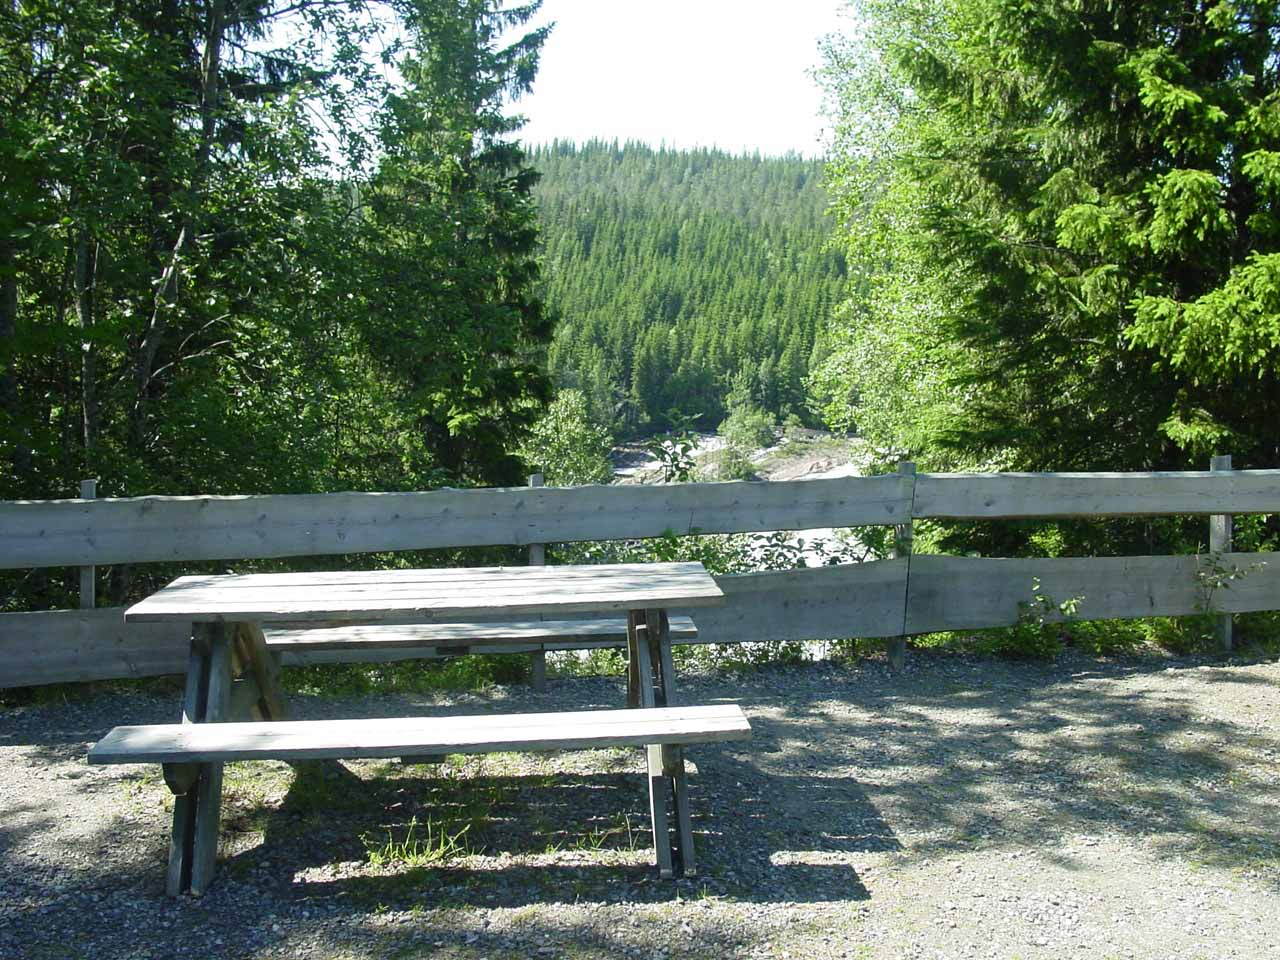 The picnic table we didn't use